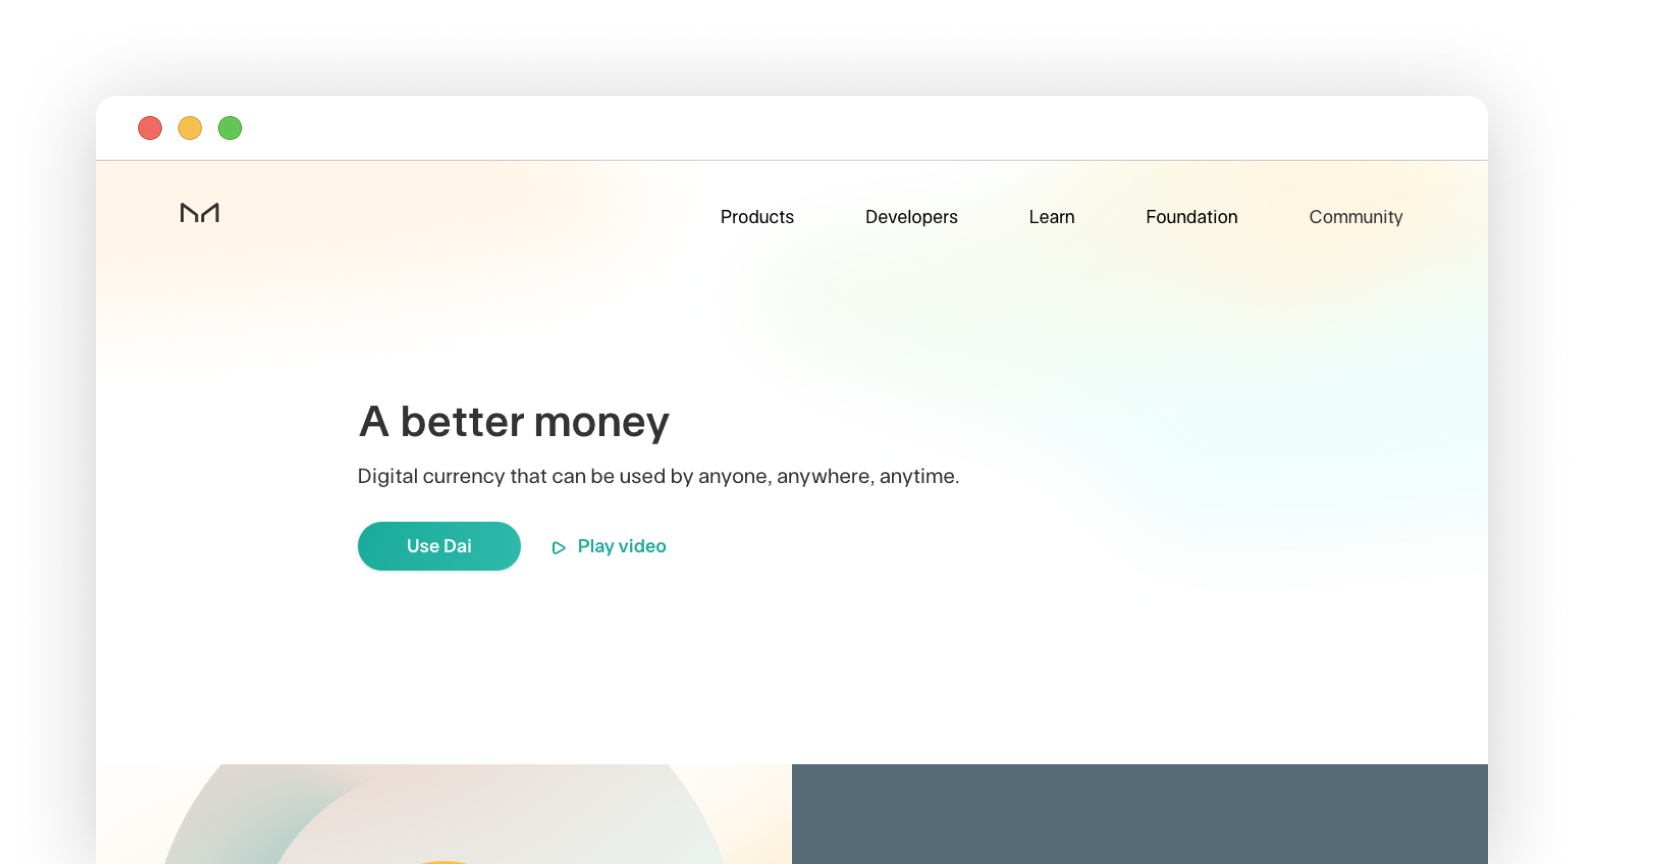 Home page of the Maker project webpage